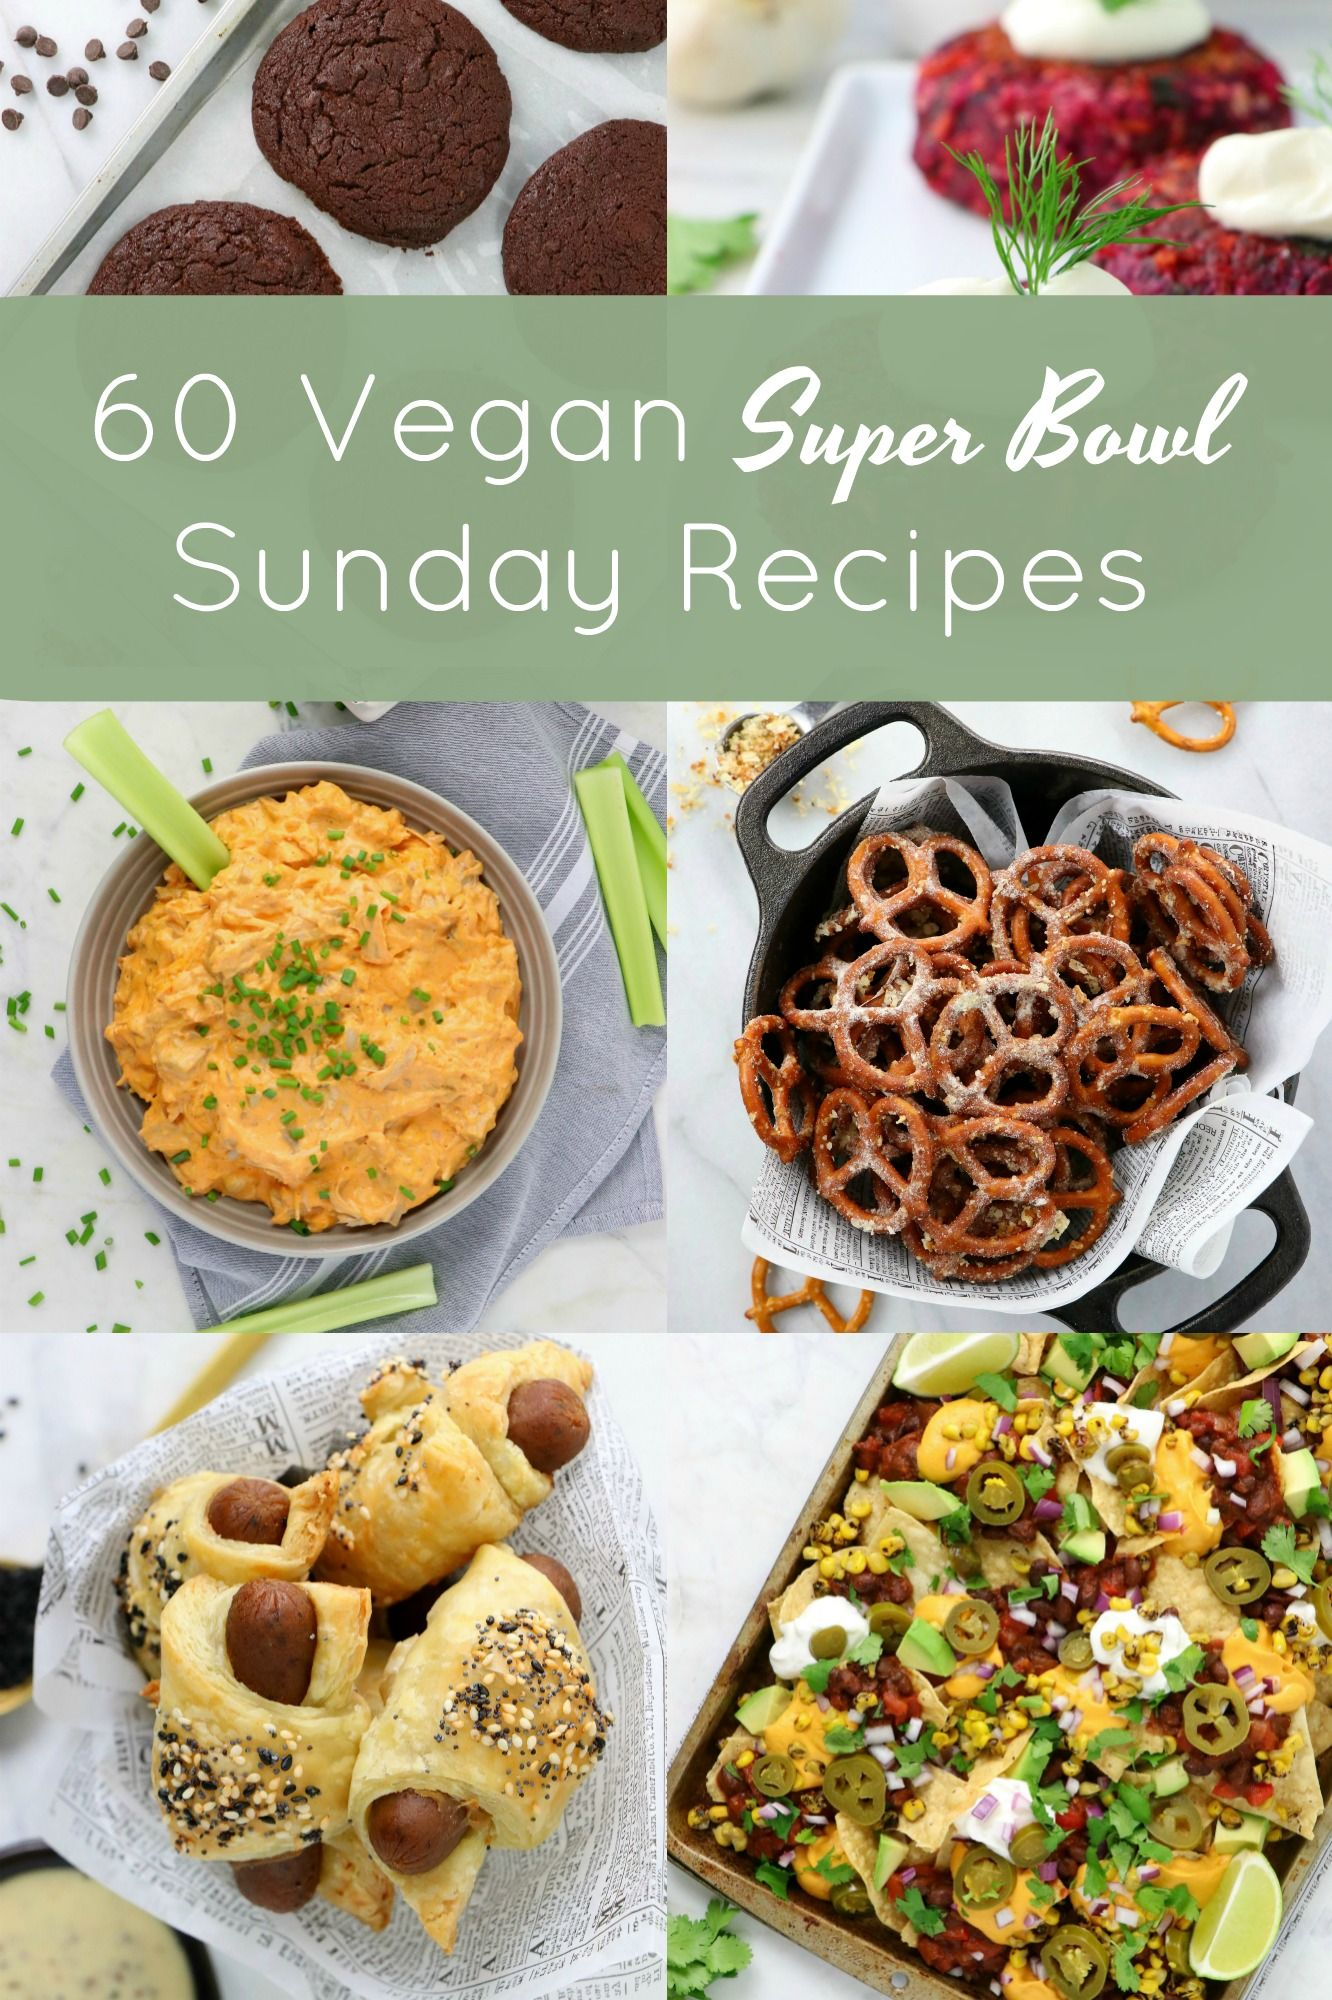 60 Vegan Super Bowl Sunday Recipes In 2020 Vegan Super Bowl Superbowl Sunday Food Recipes